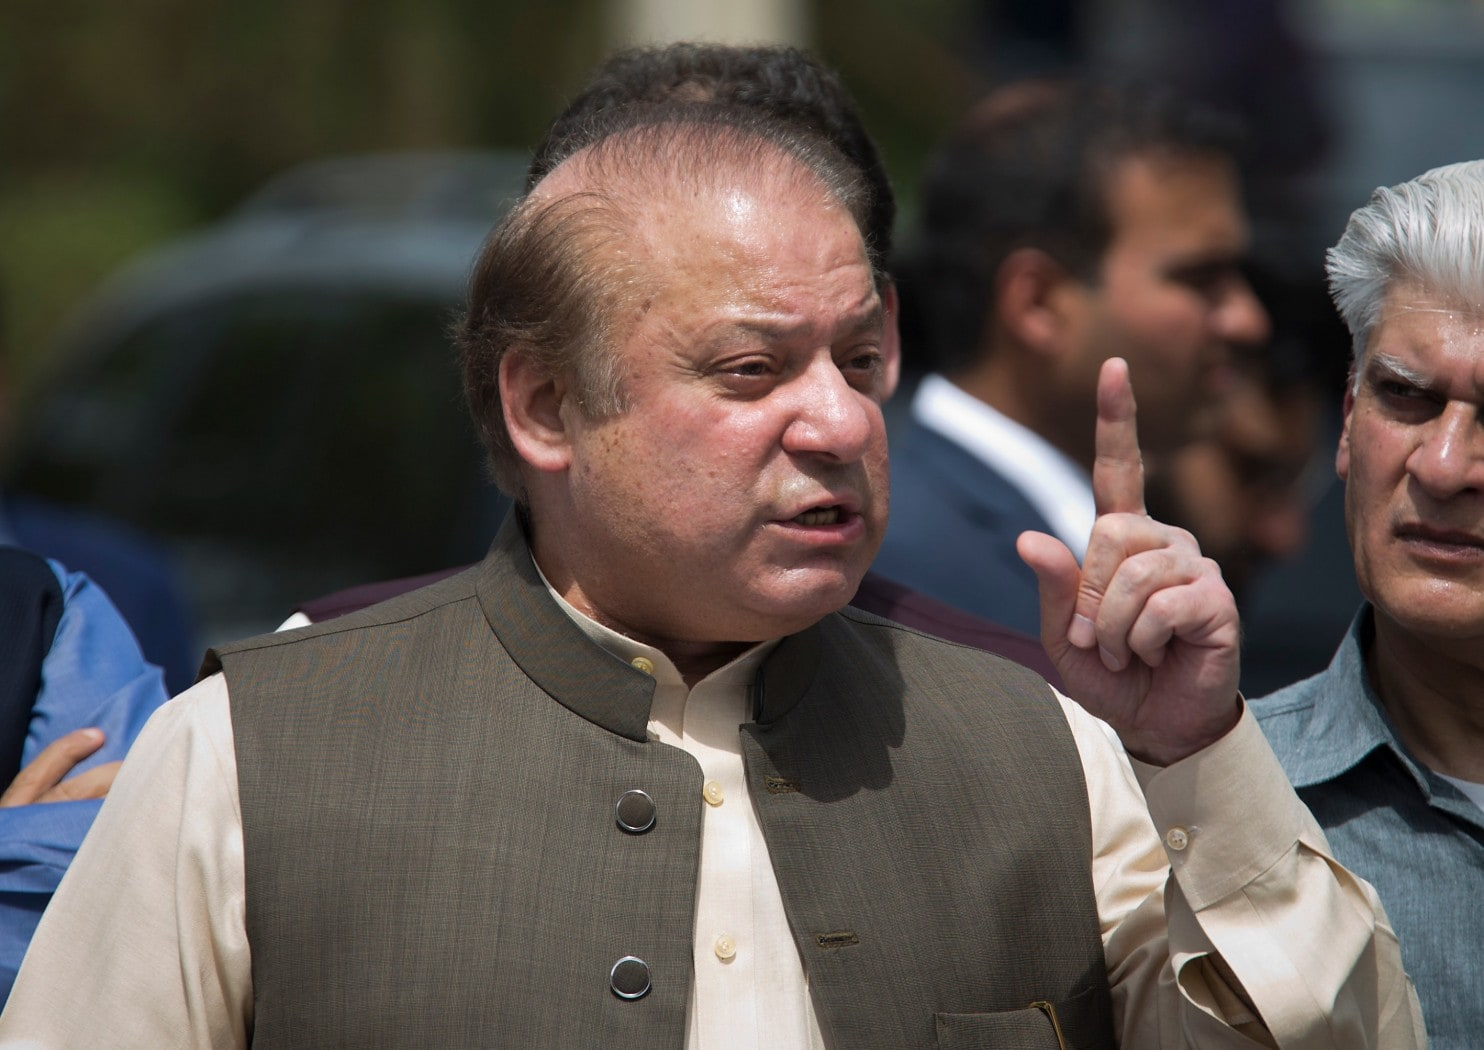 Pakistan's top court rules against disqualified Prime Minister Sharif